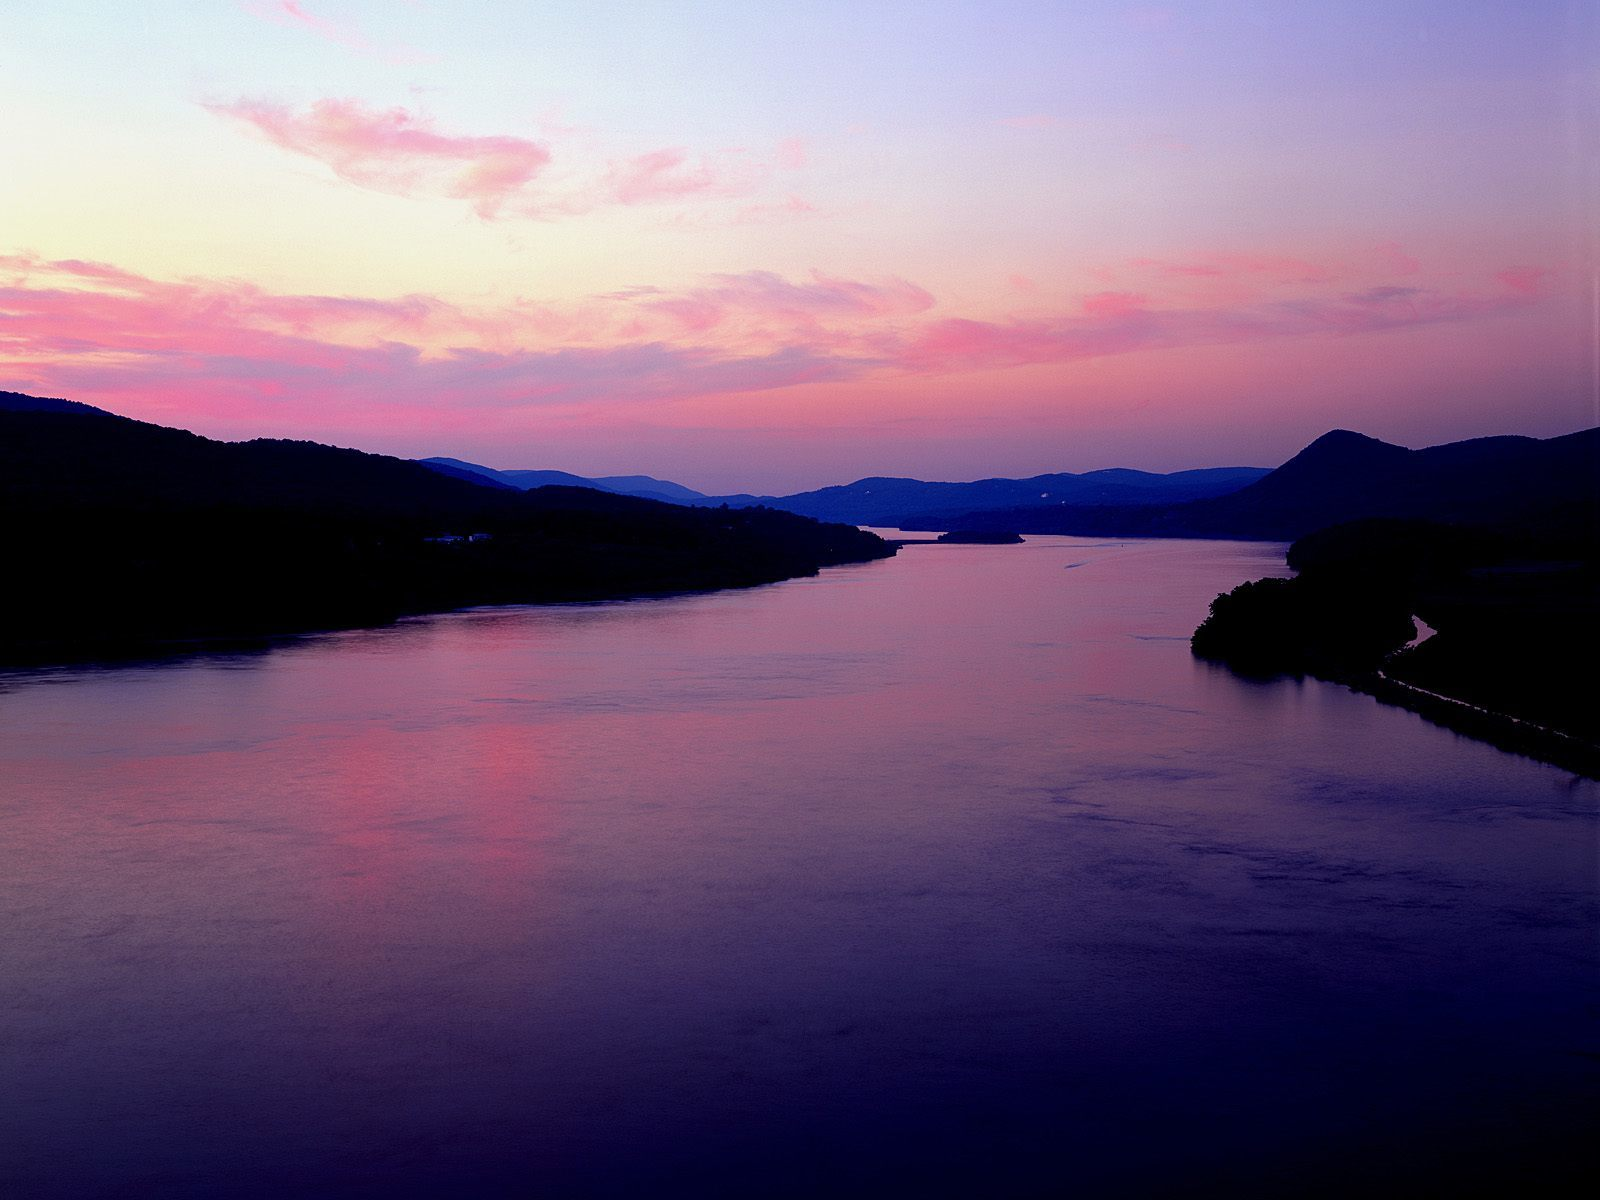 Hudson river at sunset HD Wallpaper